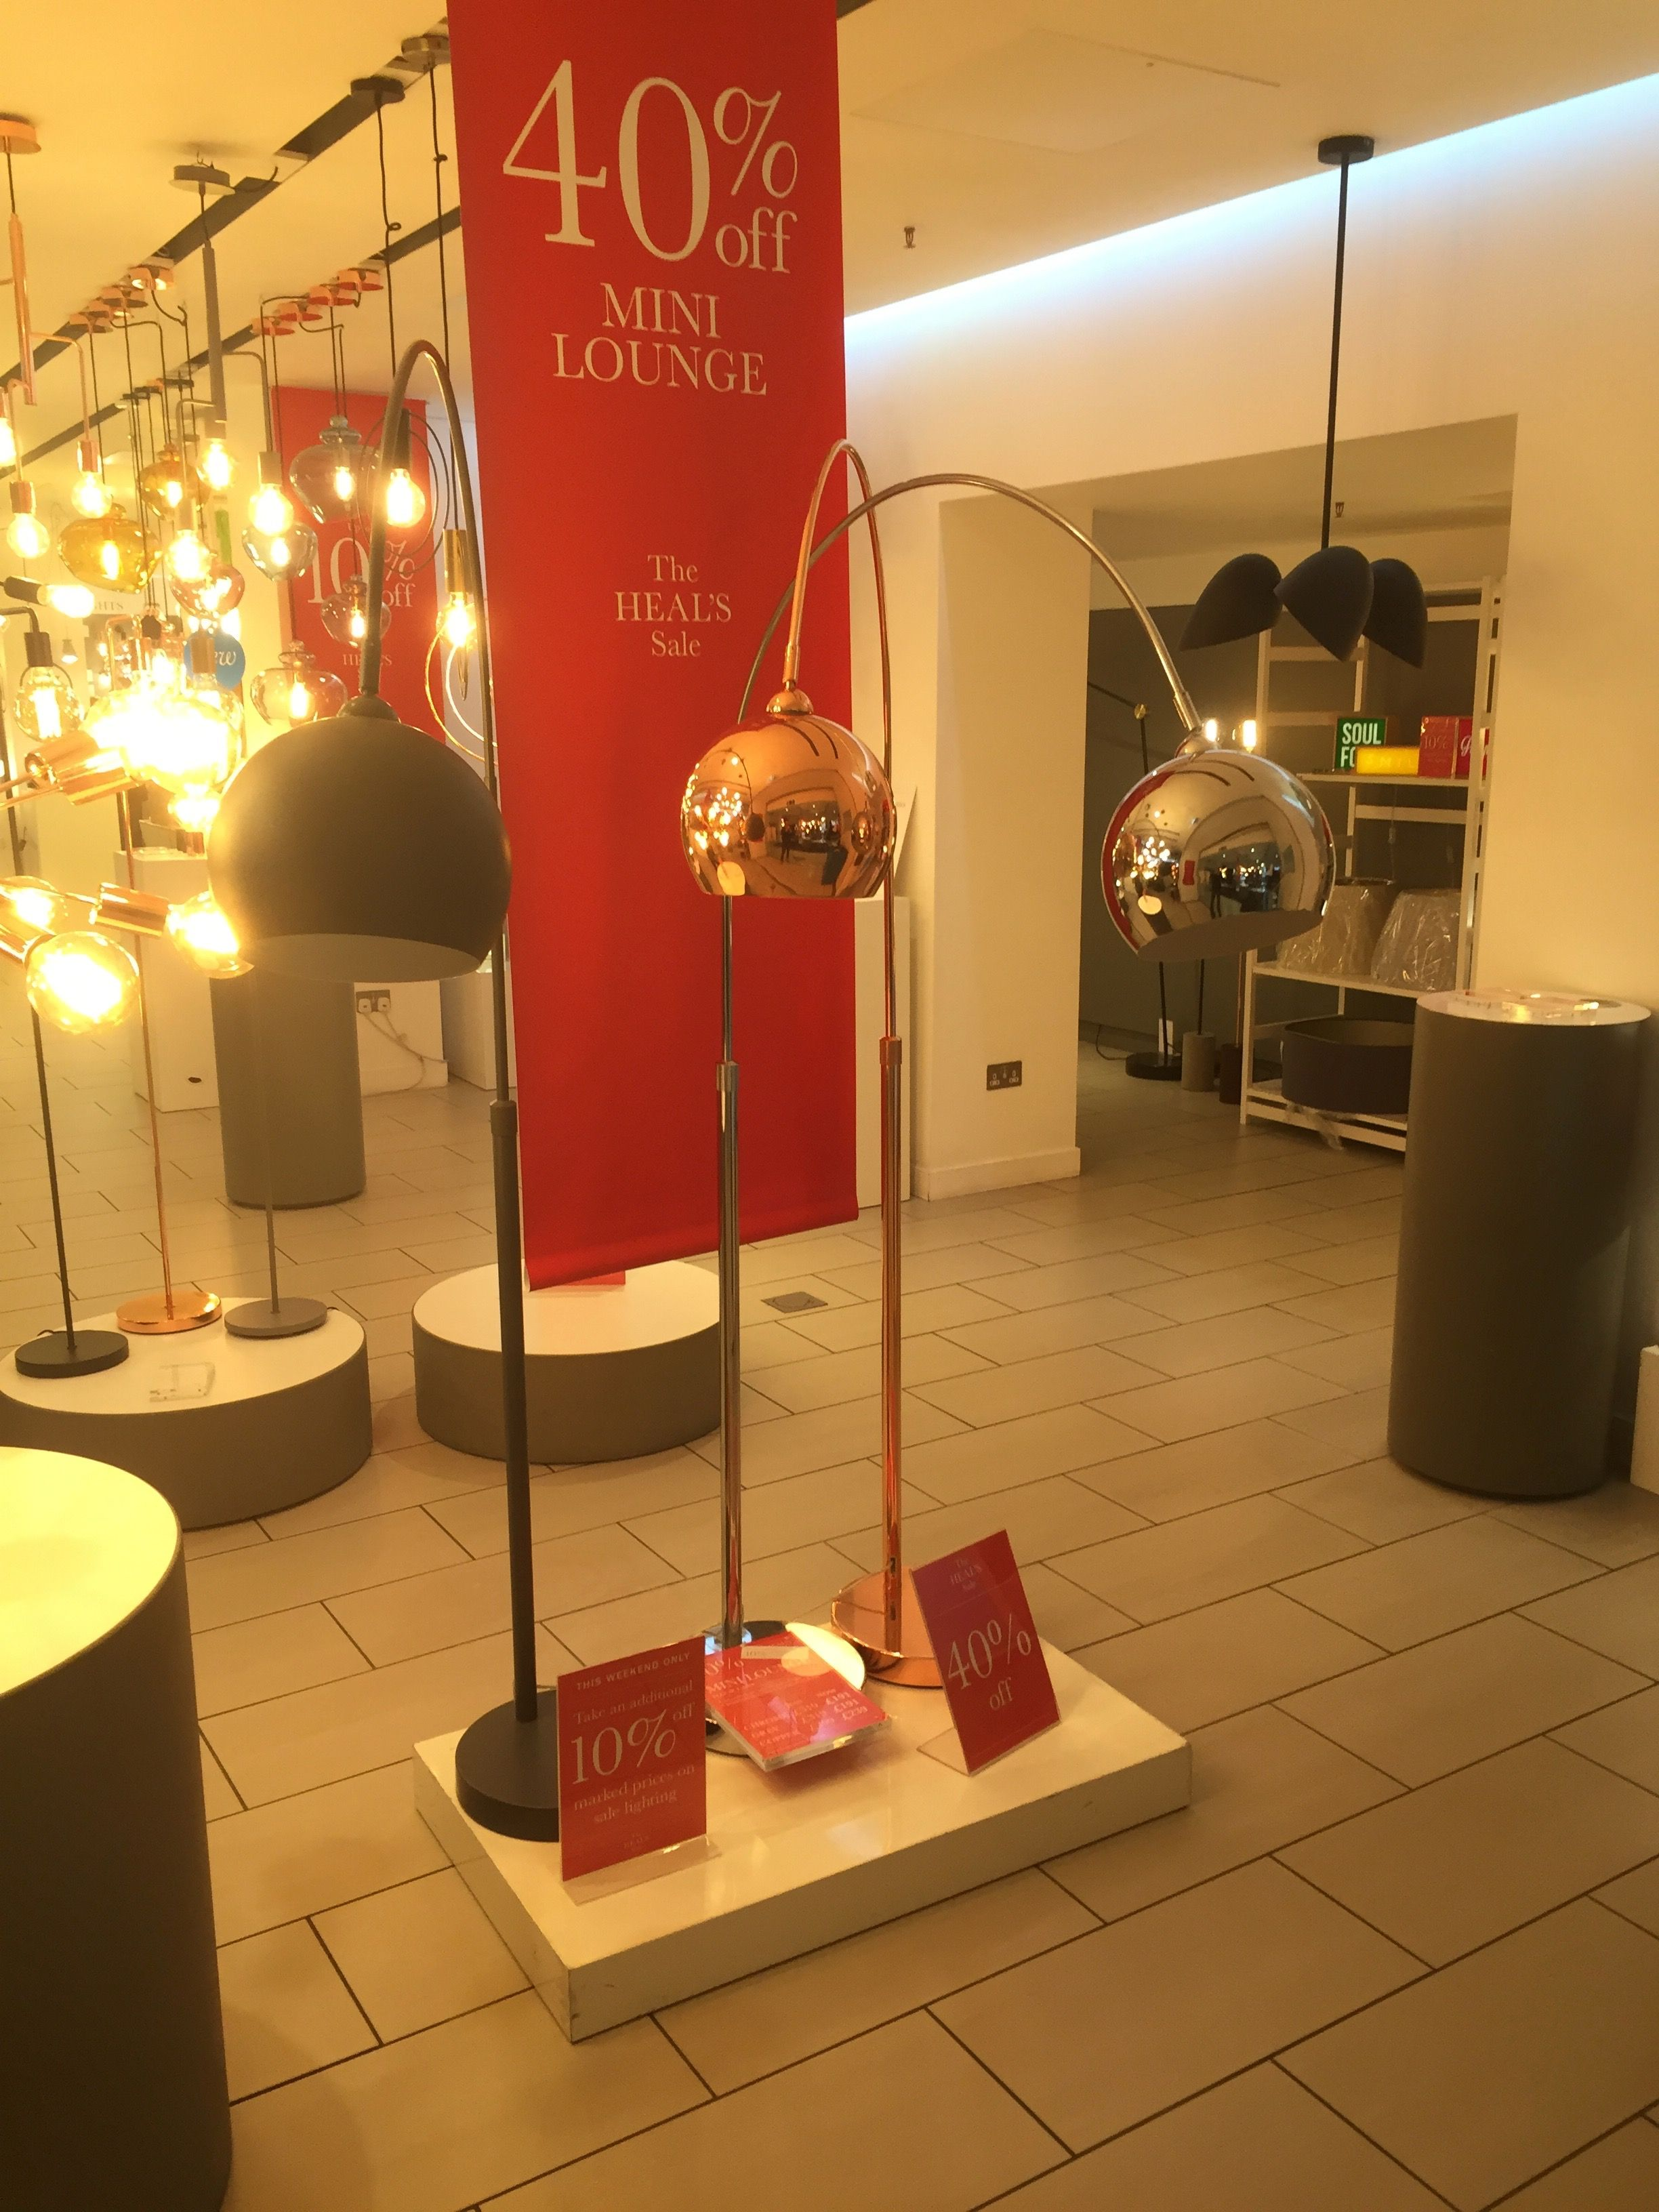 Floor lamps copper or chrome source heals tottenham court road floor lamps copper or chrome source heals tottenham court road london price aloadofball Gallery